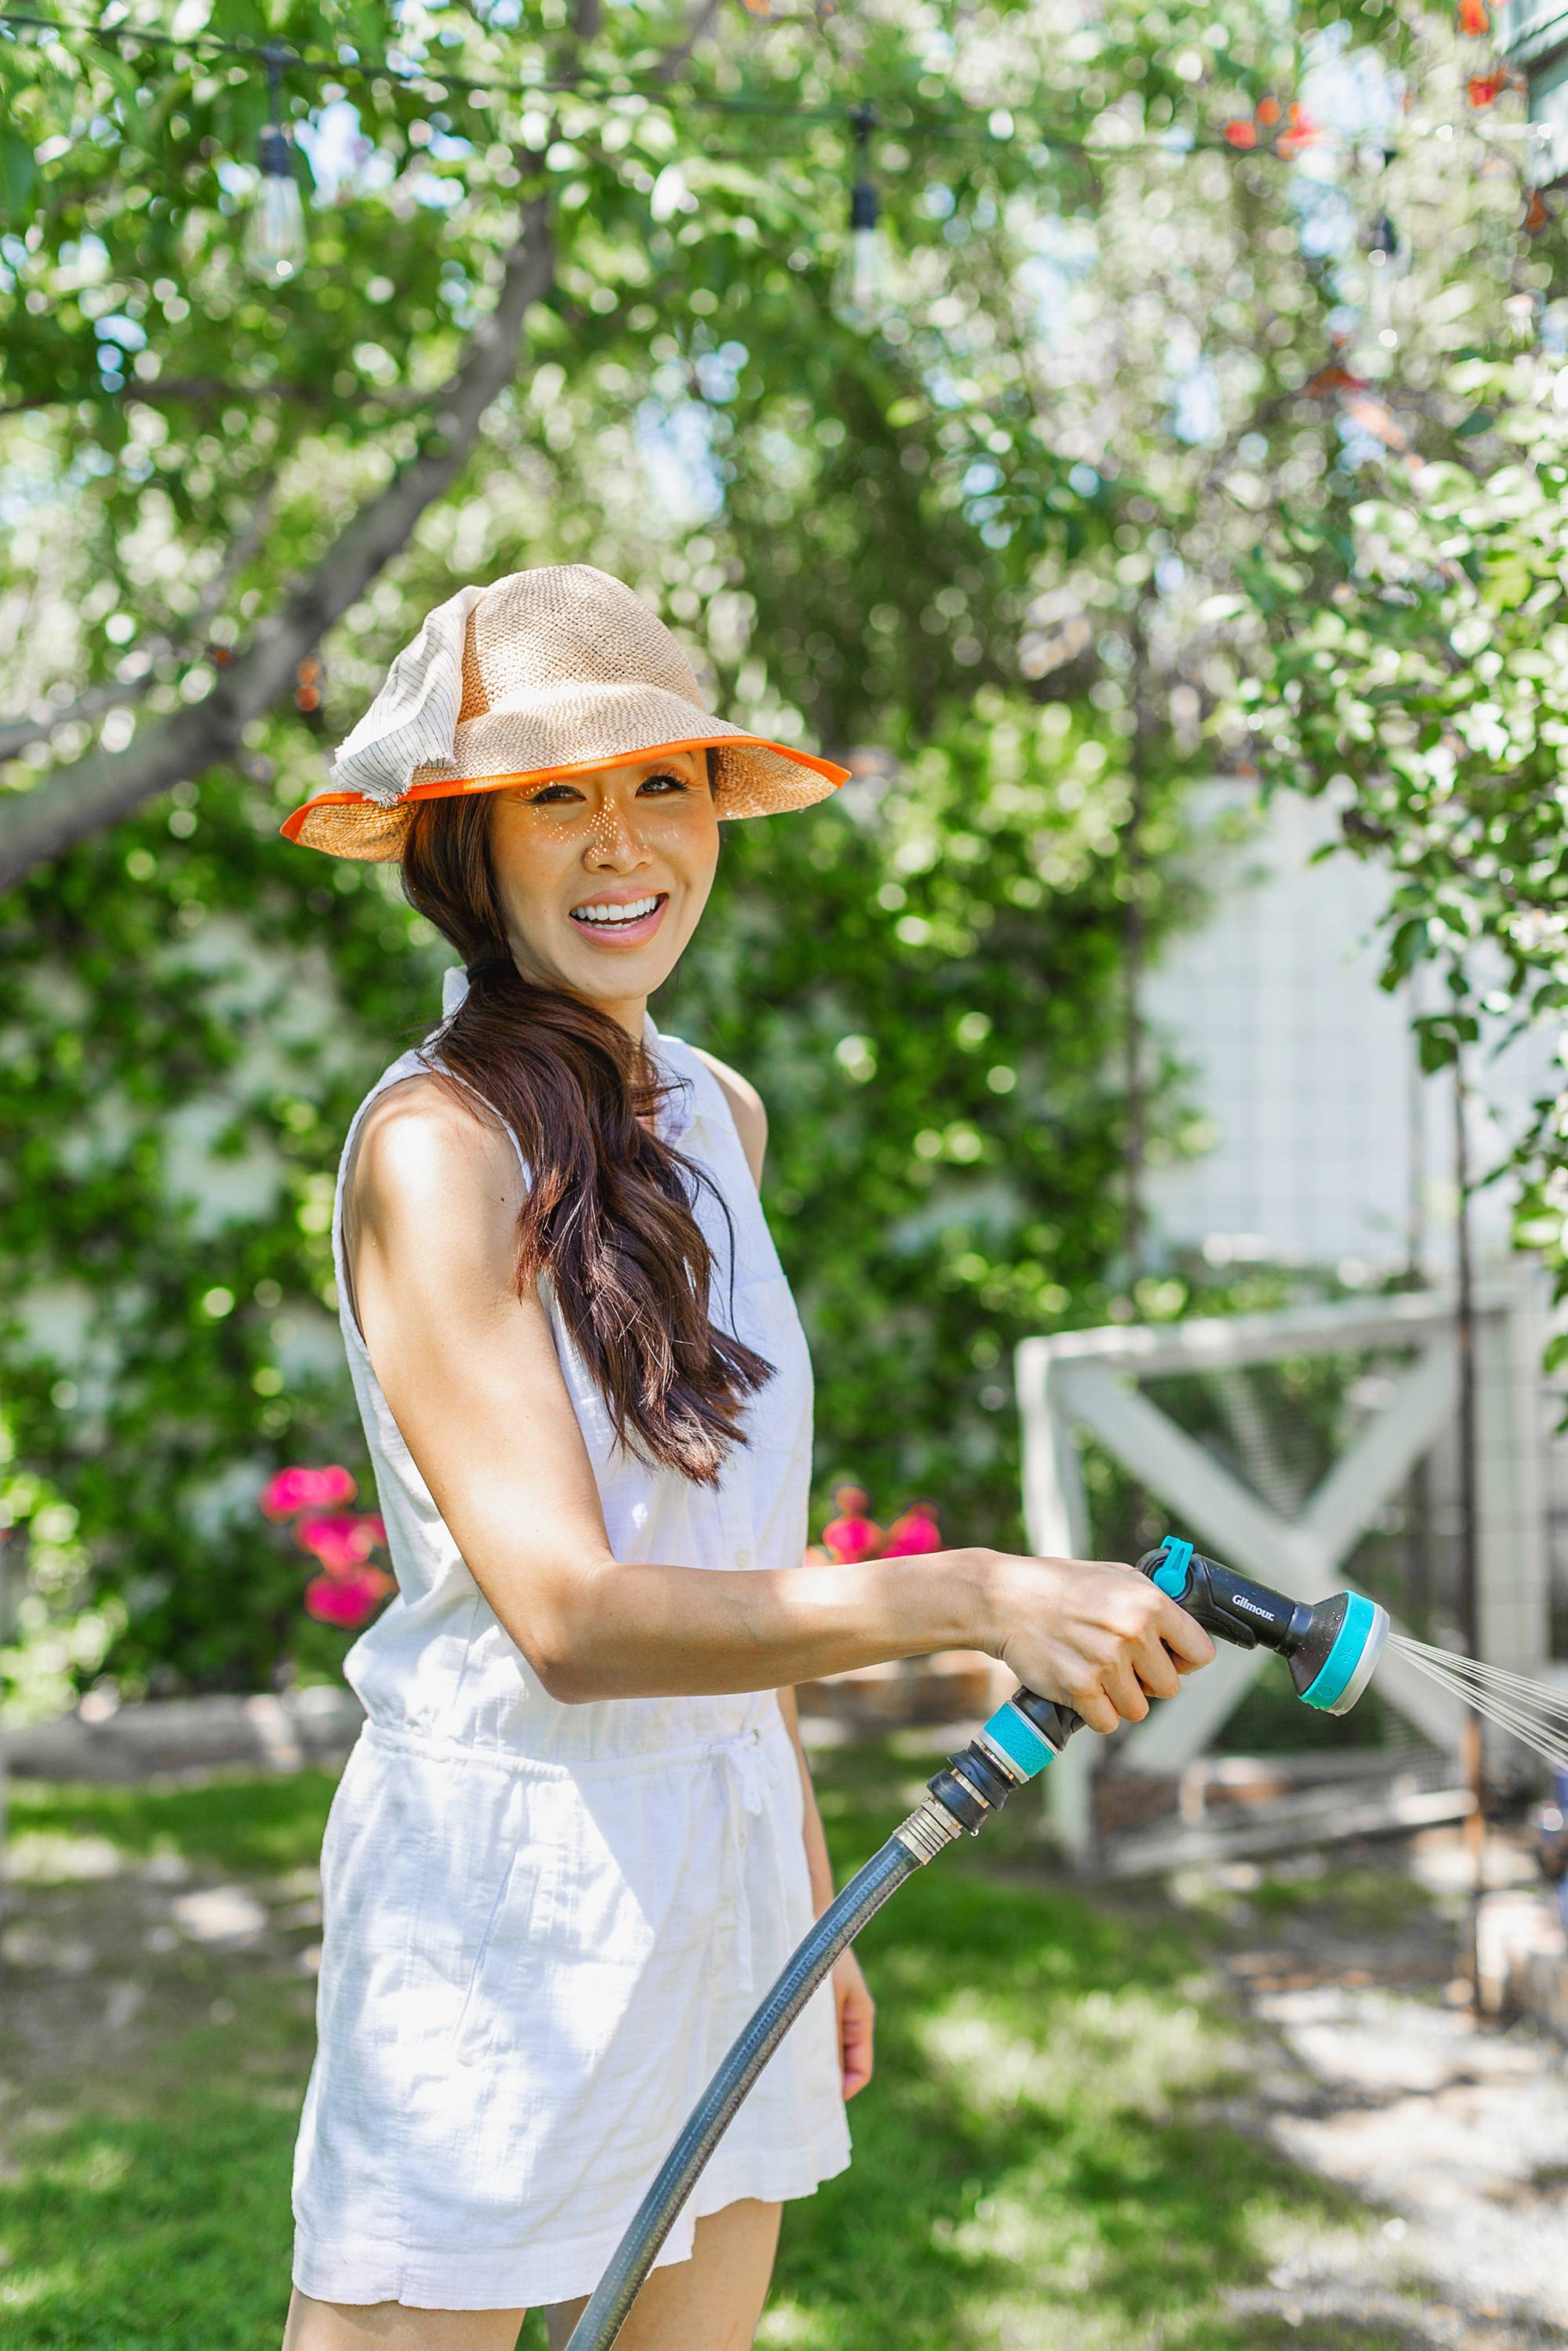 gardening with hat on with Gilmour hose